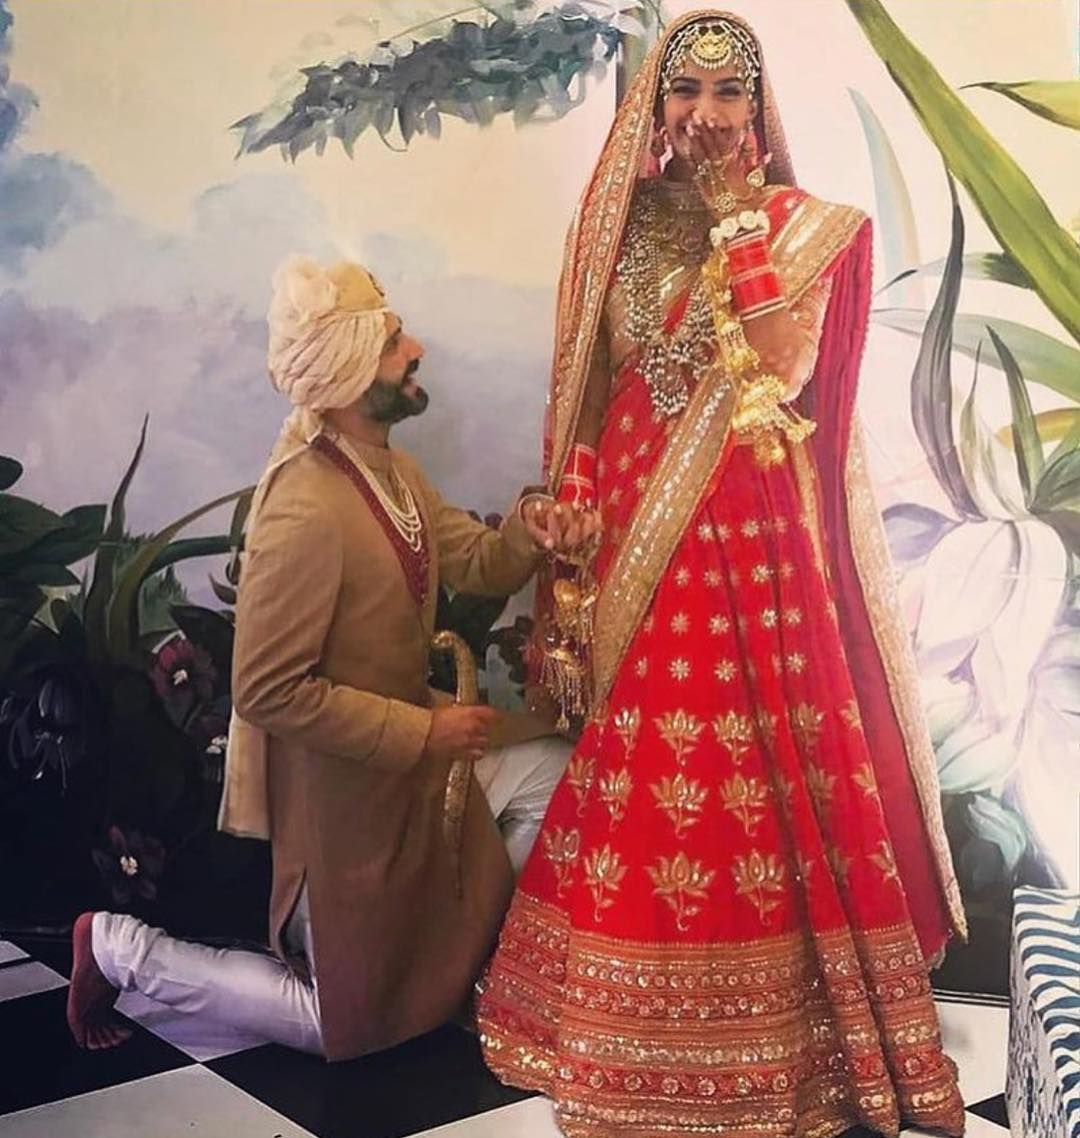 42 Sonam Kapoor Wedding Pics - Engagement and Complete Wedding Pictures